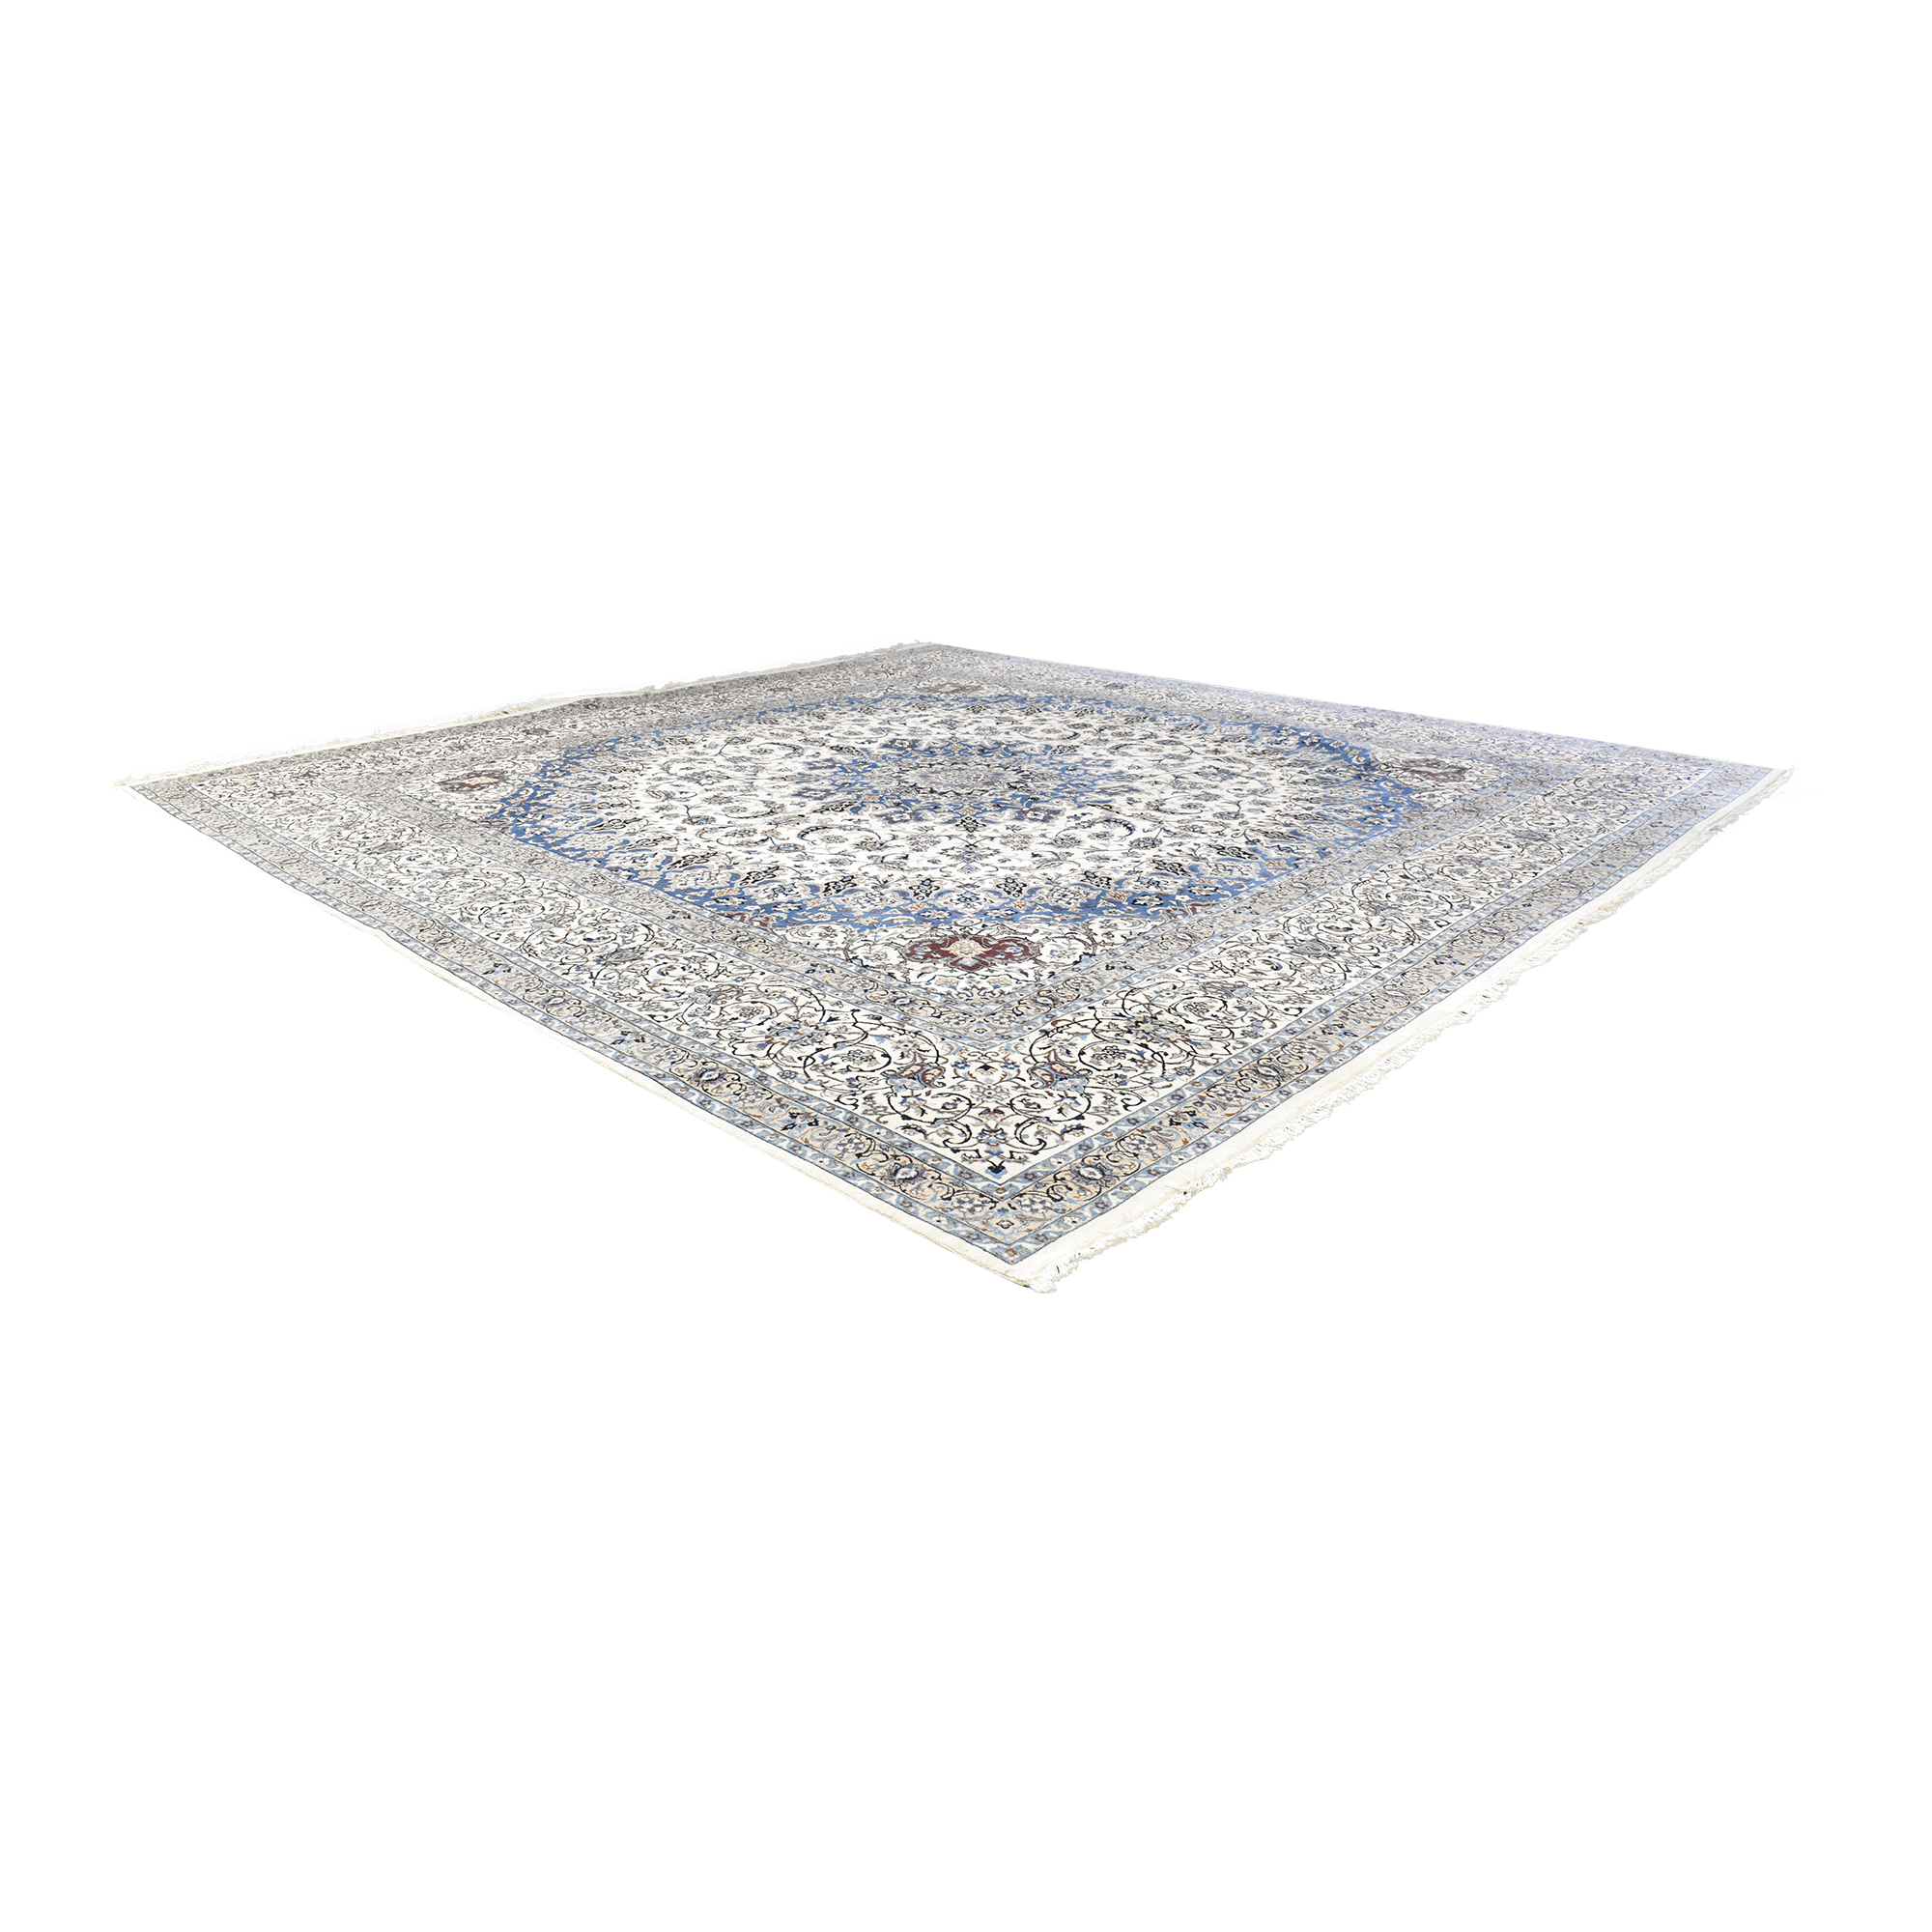 Traditional Patterned Area Rug Decor